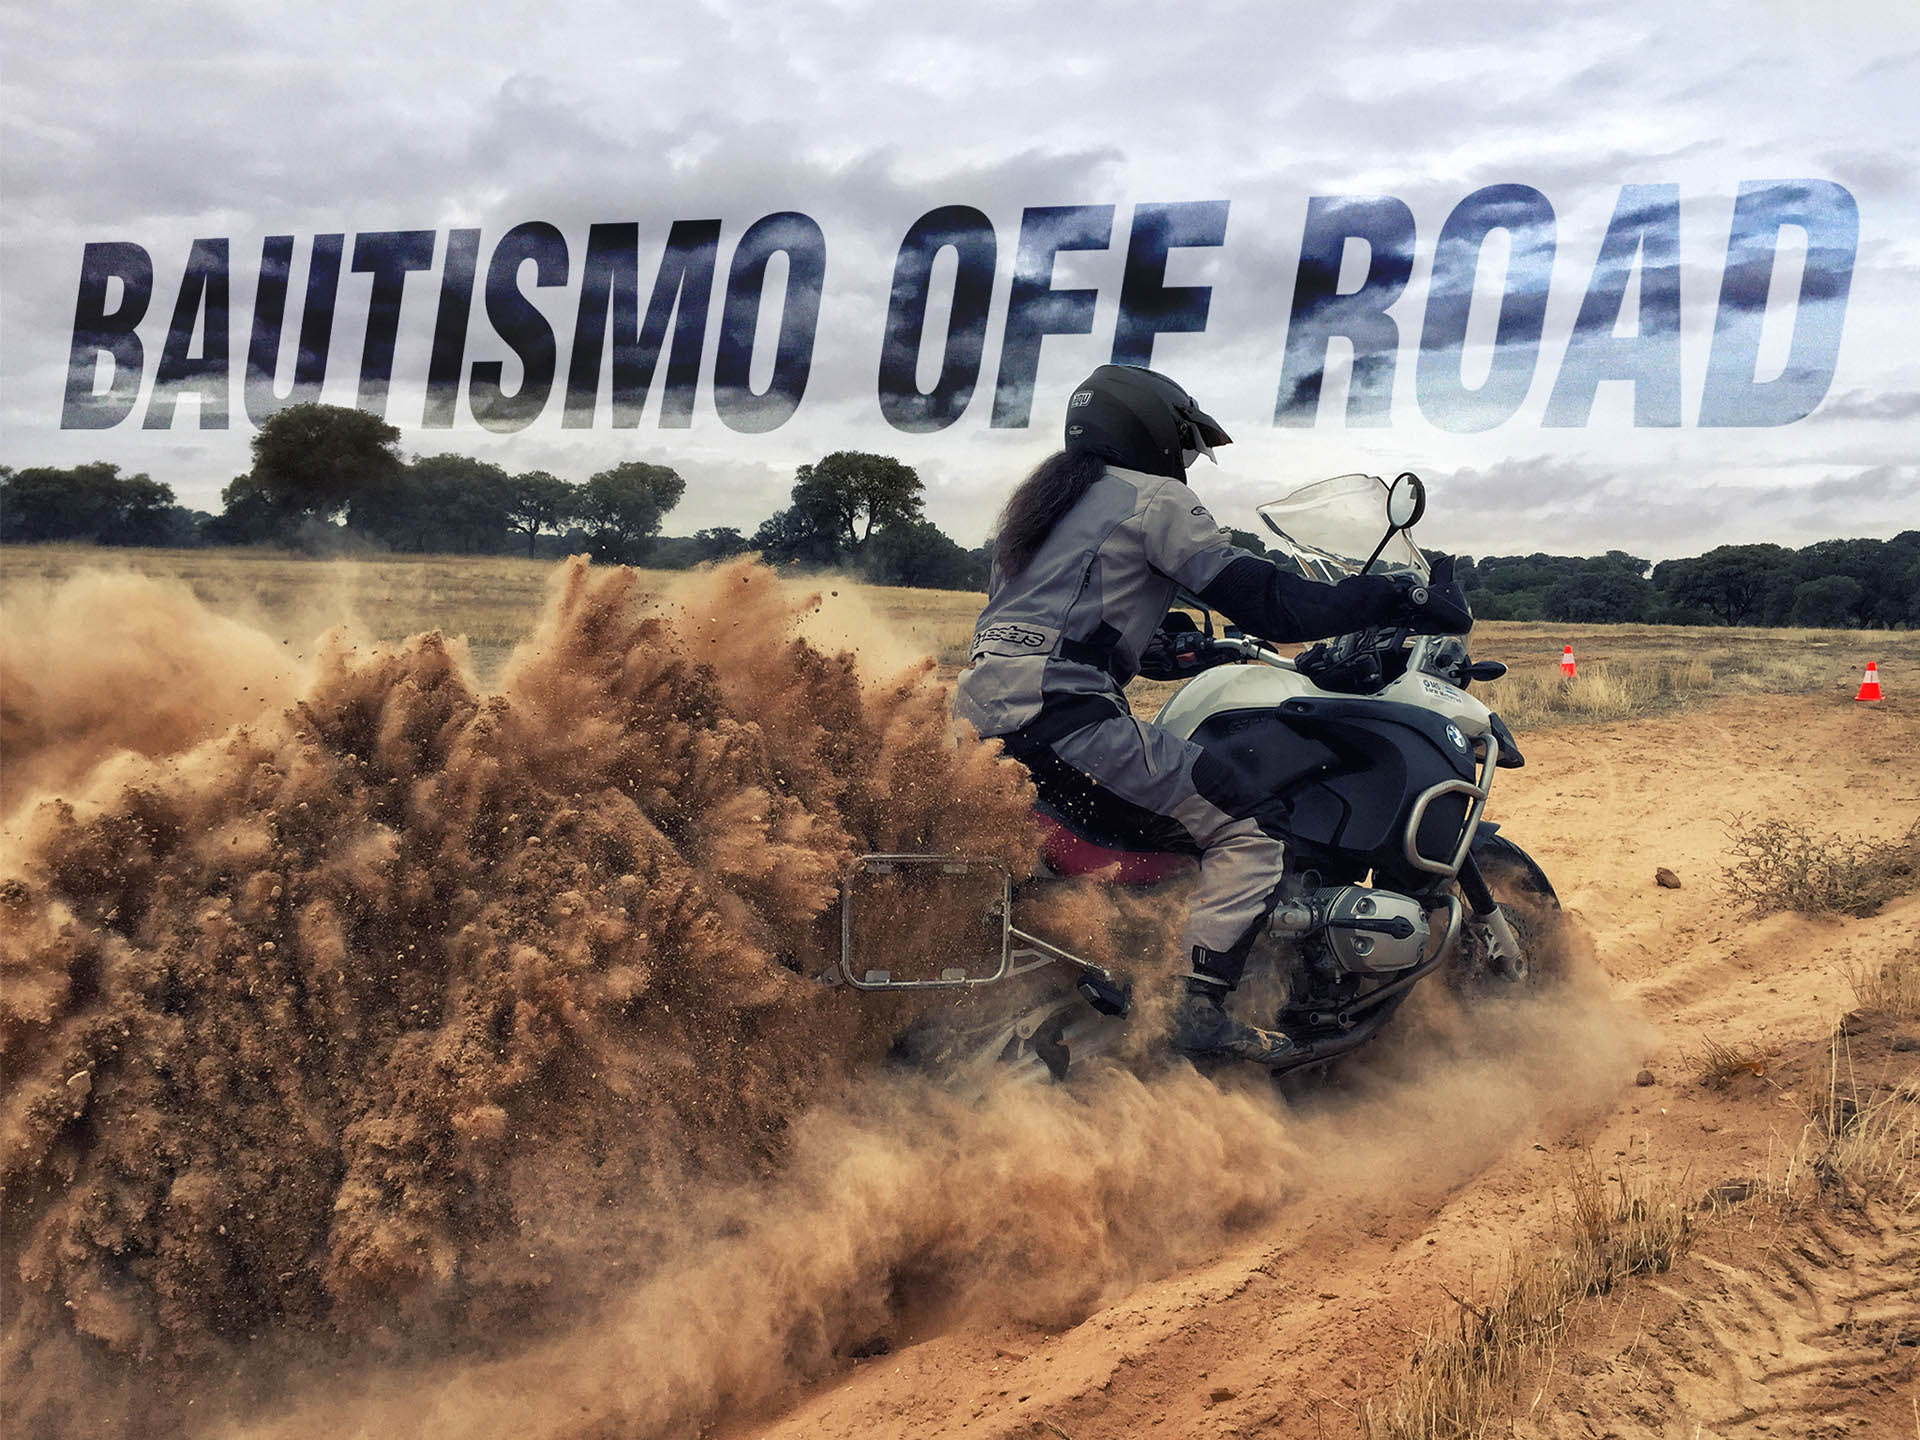 Bautismo offroad